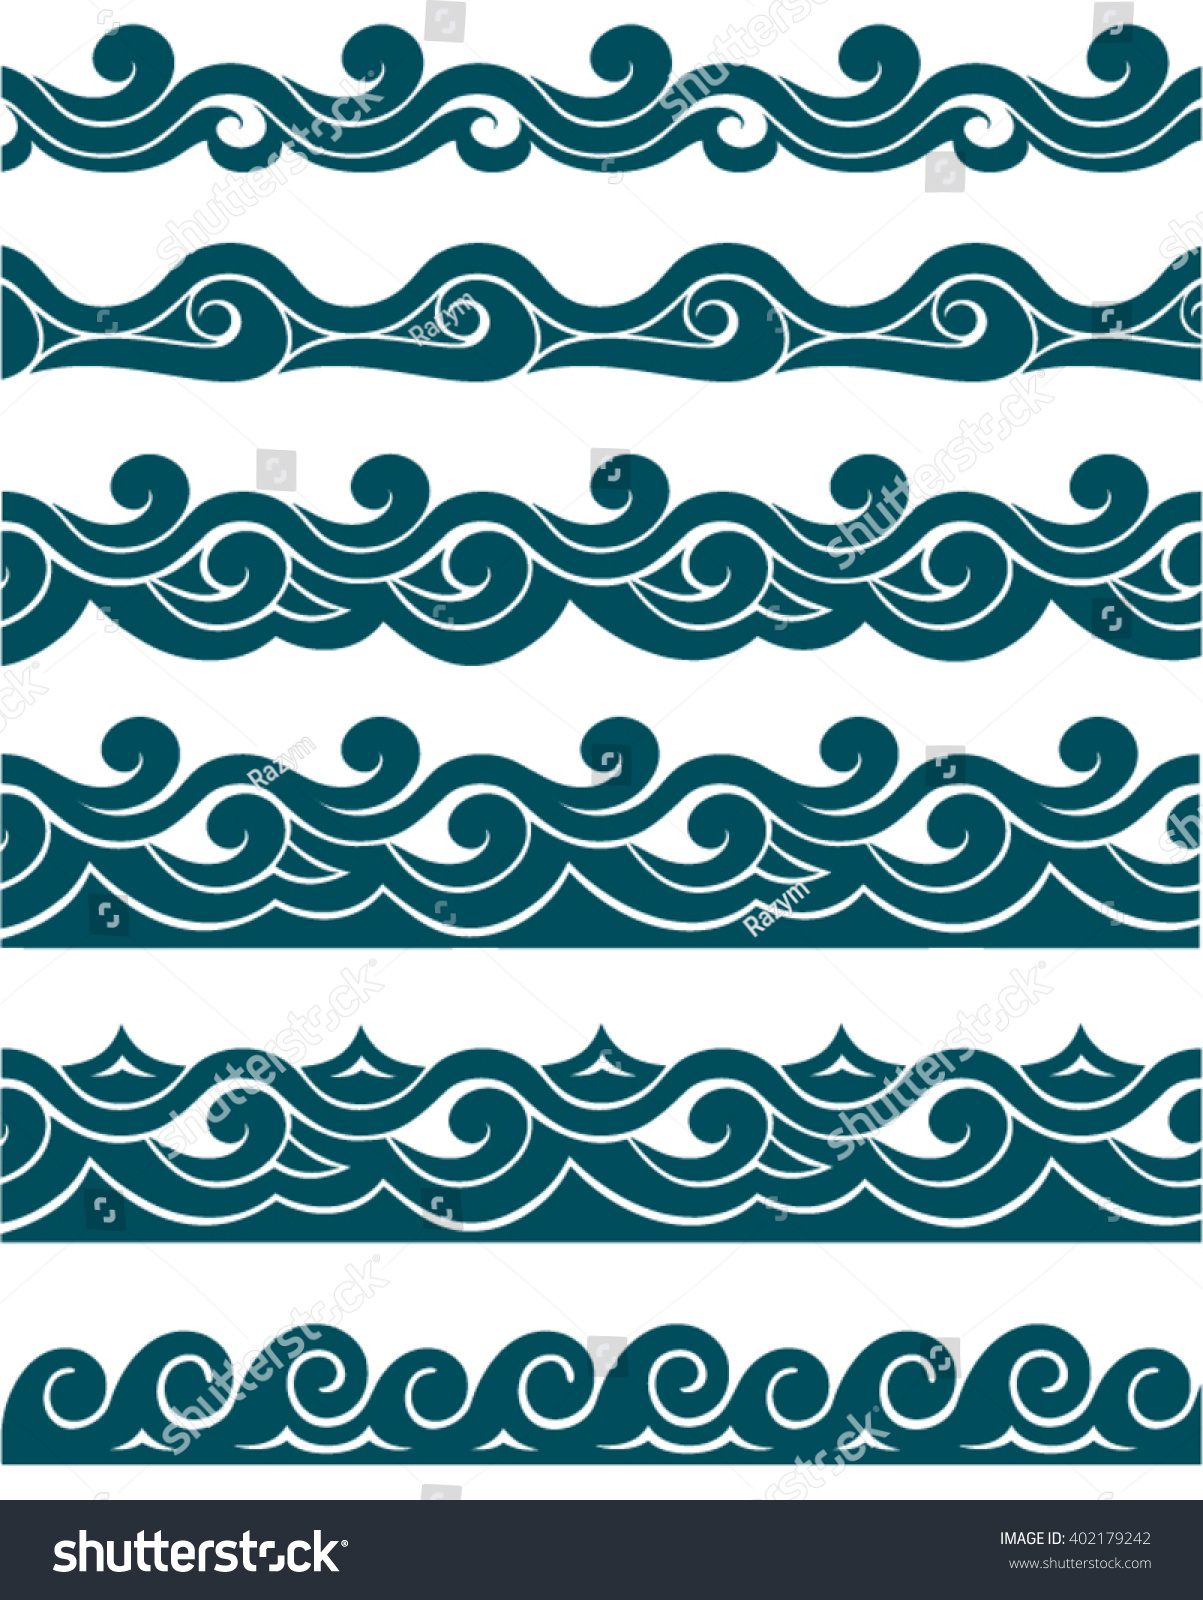 Marine Band Watercolor Wave Crest Seamless Pattern Ez Canvas